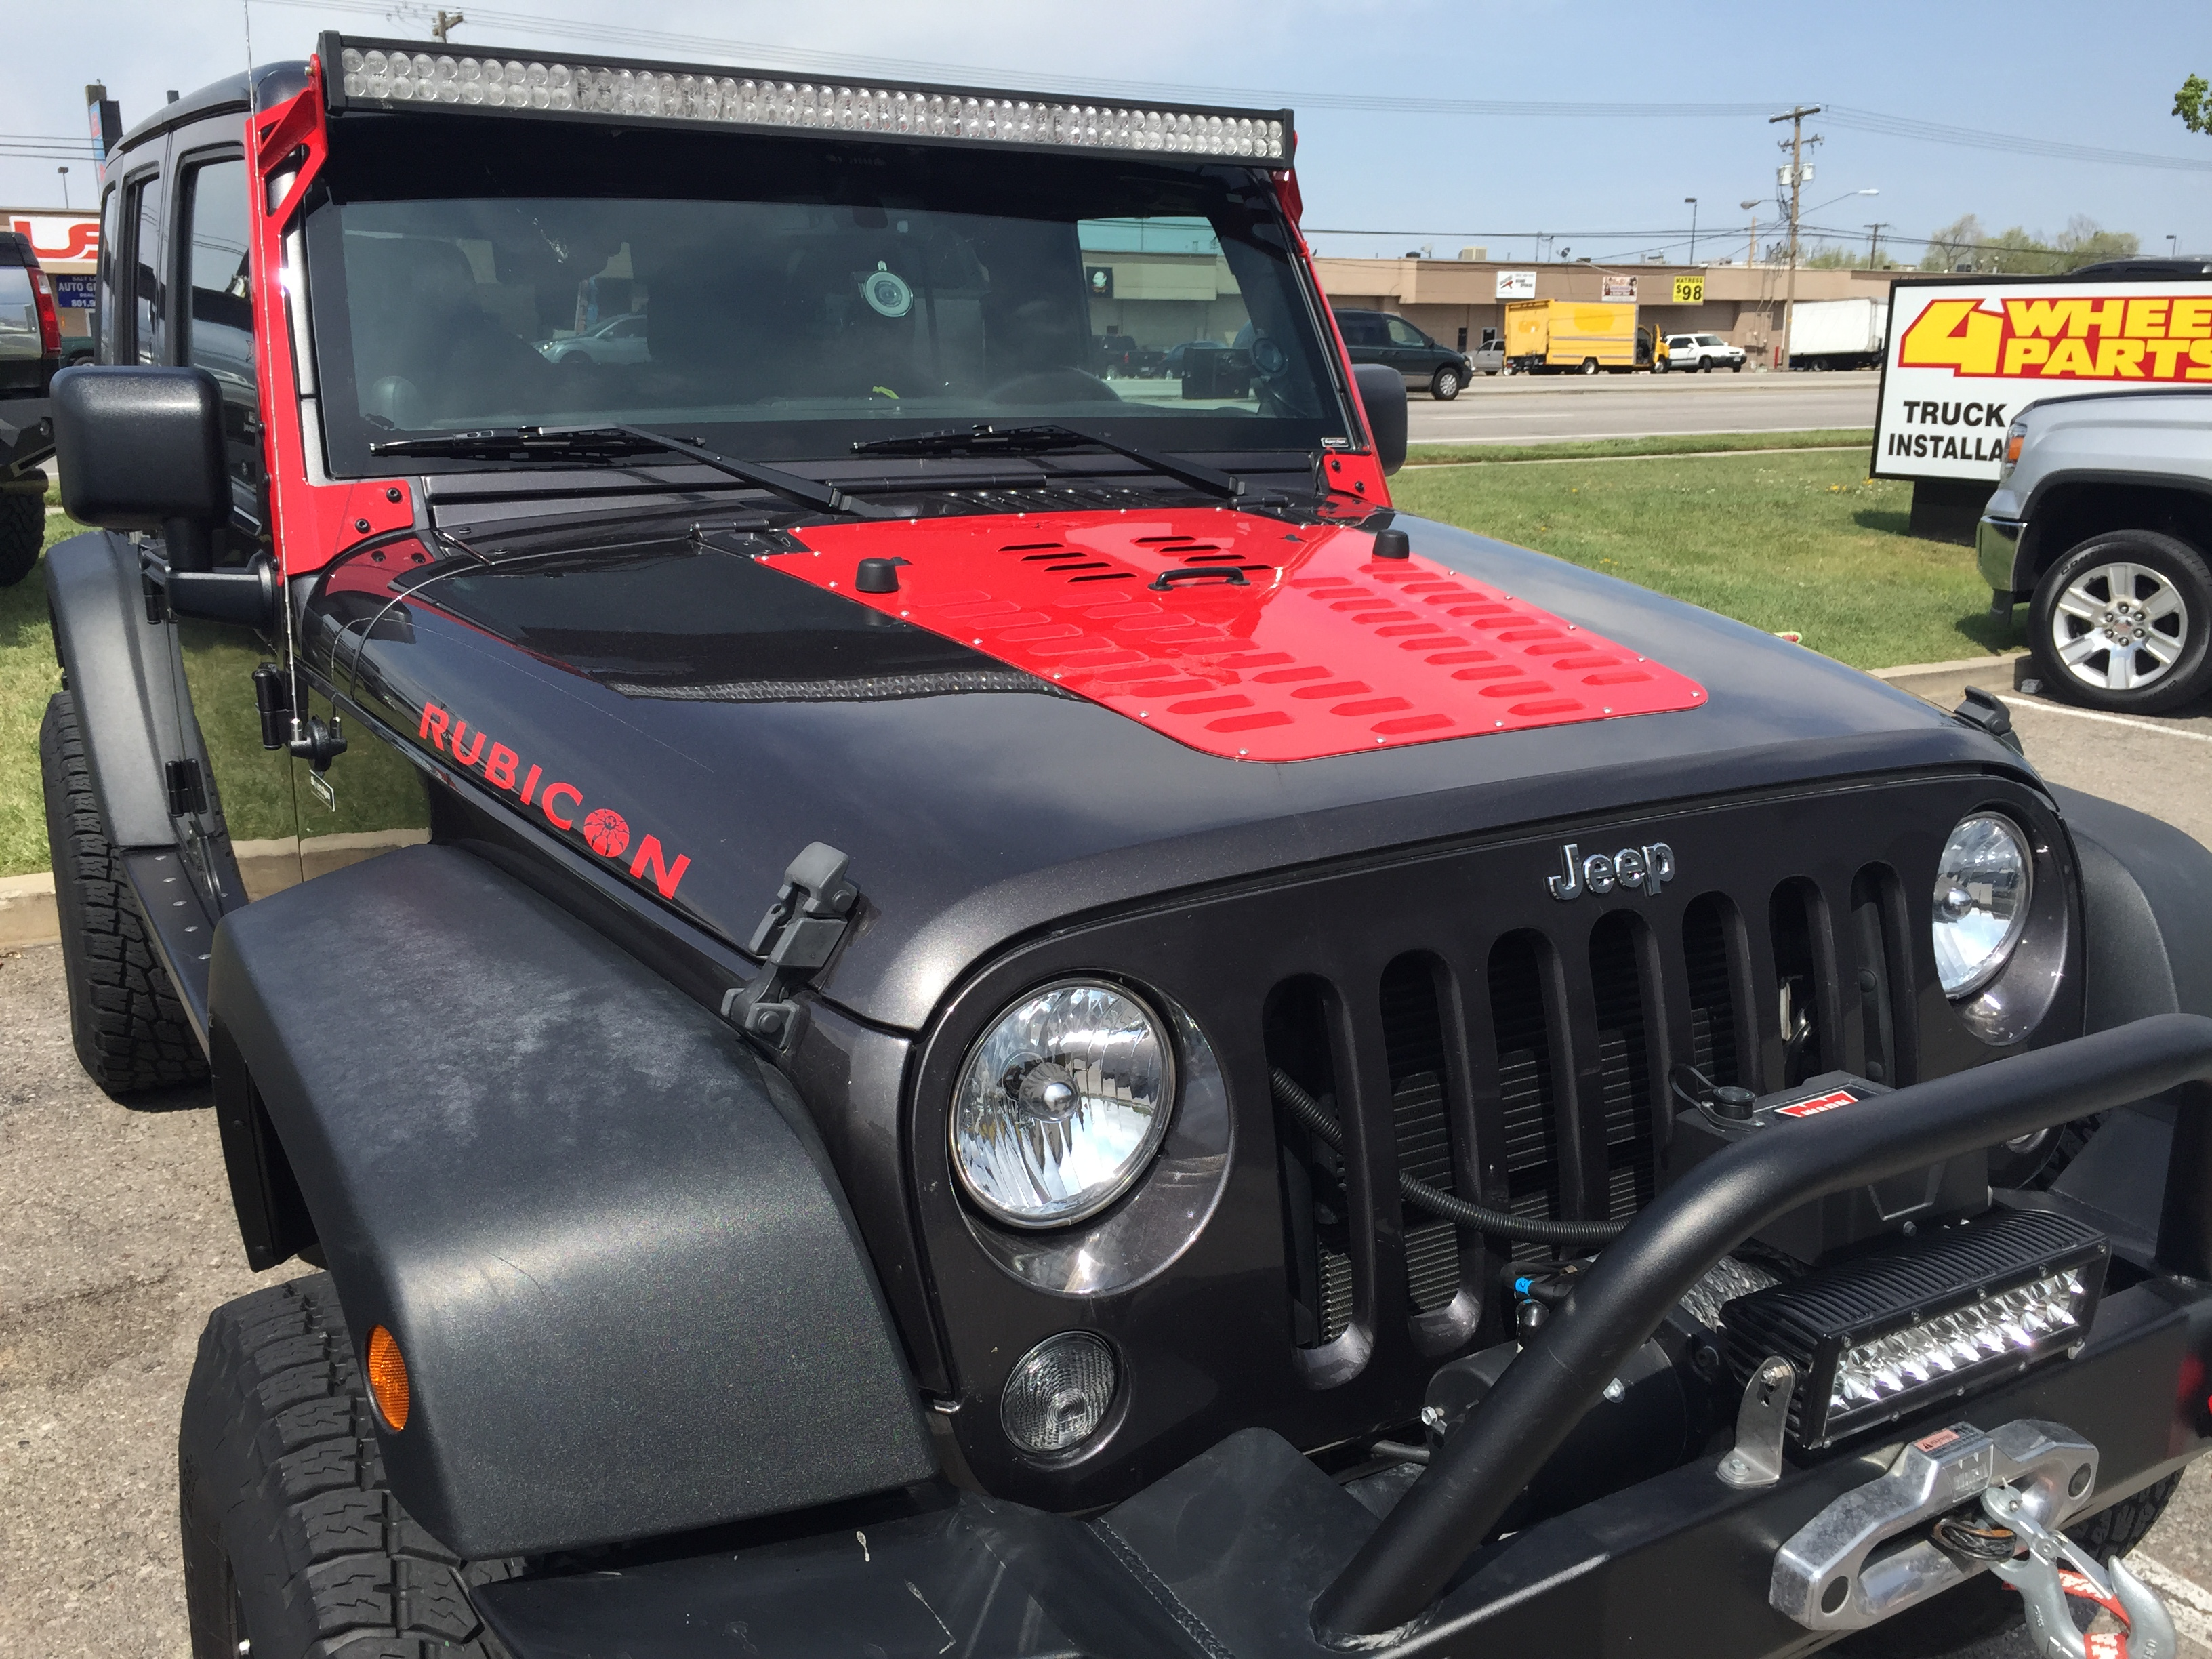 Poison Spyder Jeep Wrangler Jk Custom Build Gpr Dna